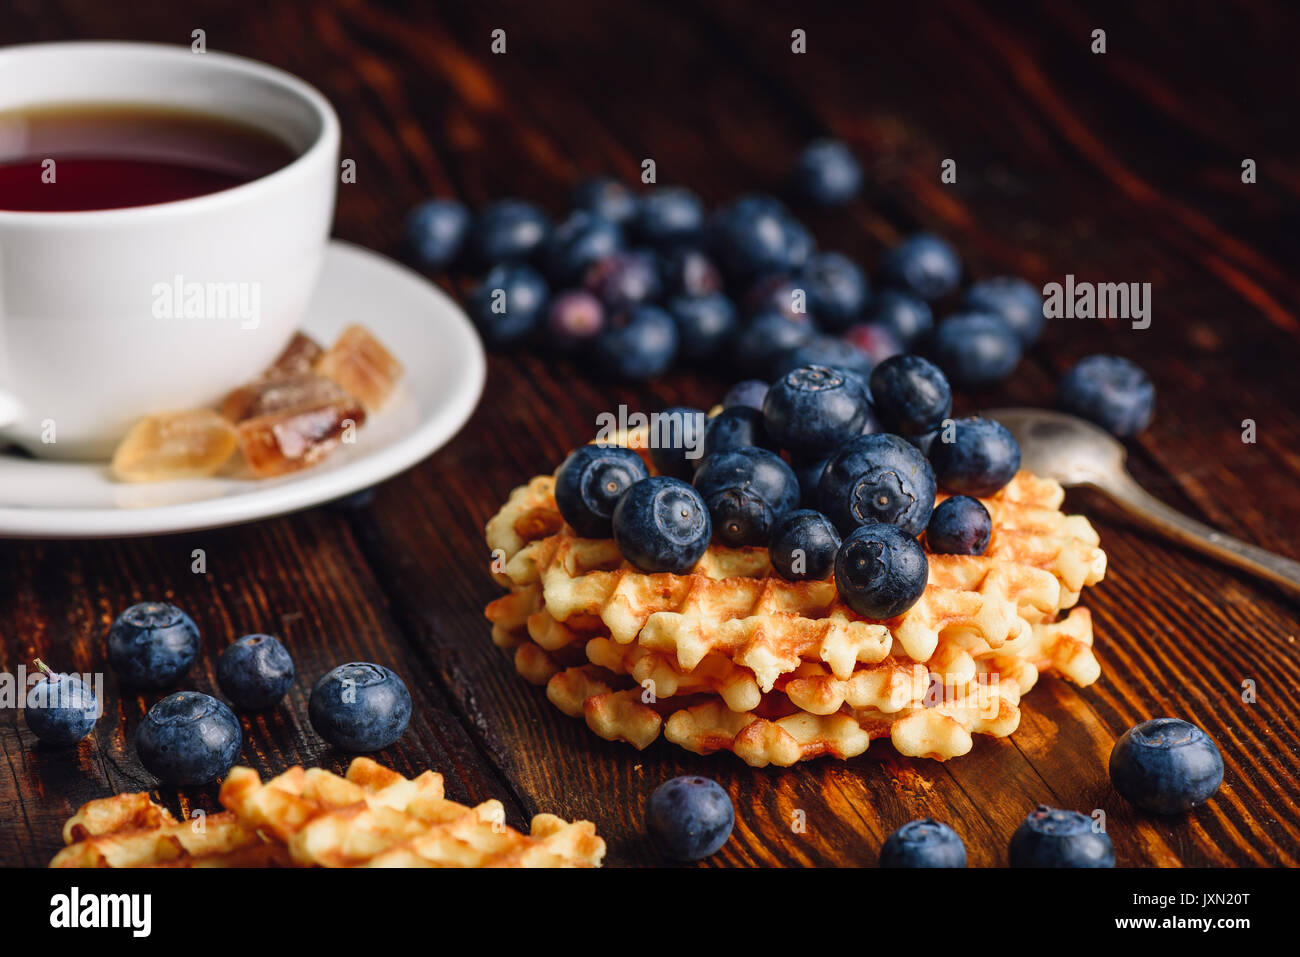 White Cup of Tea with Blueberries and Homemade Waffles for Breakfast. - Stock Image